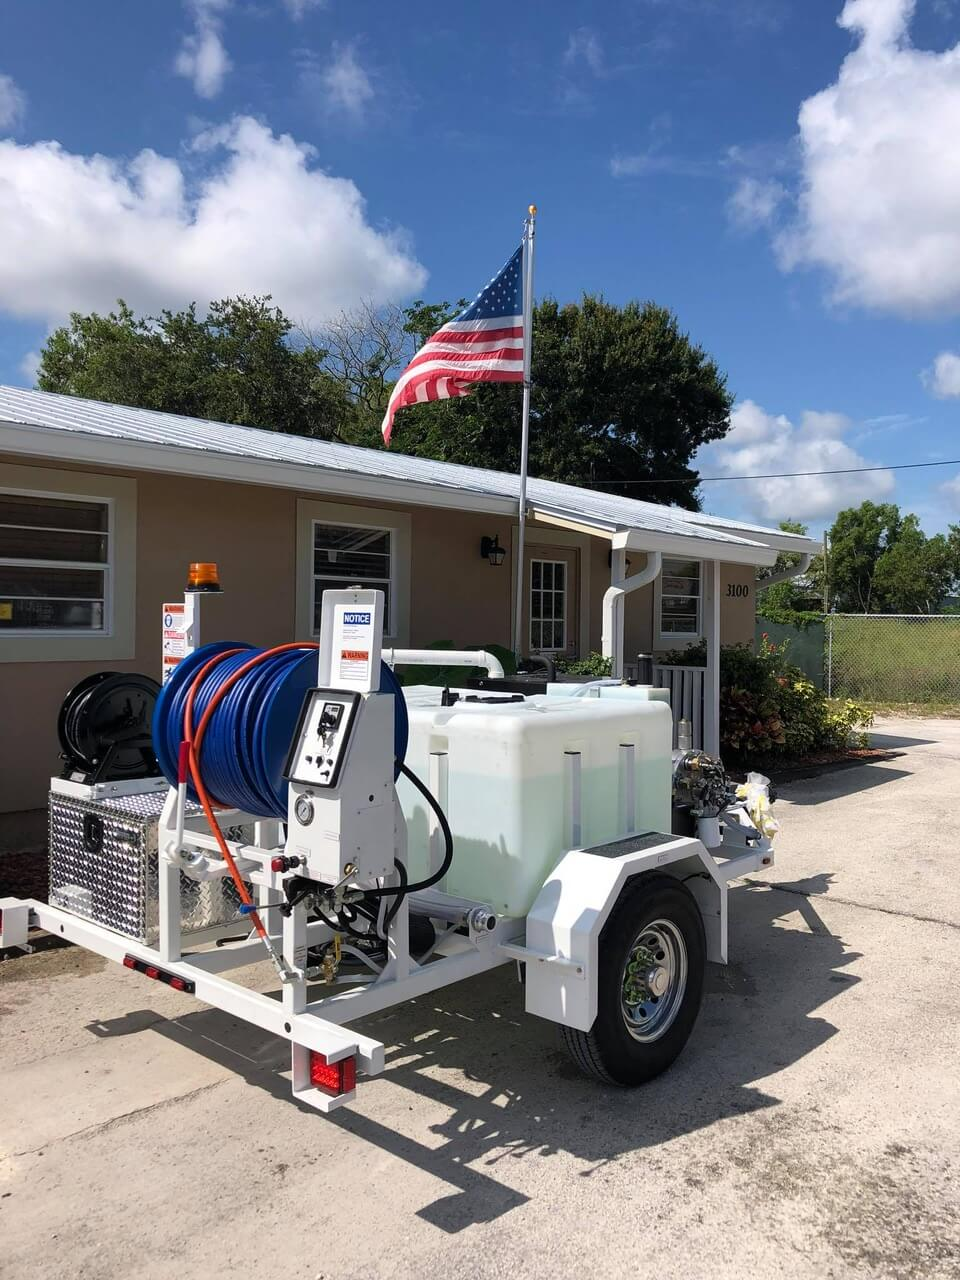 Harben Sewer Line Jetter for clogs